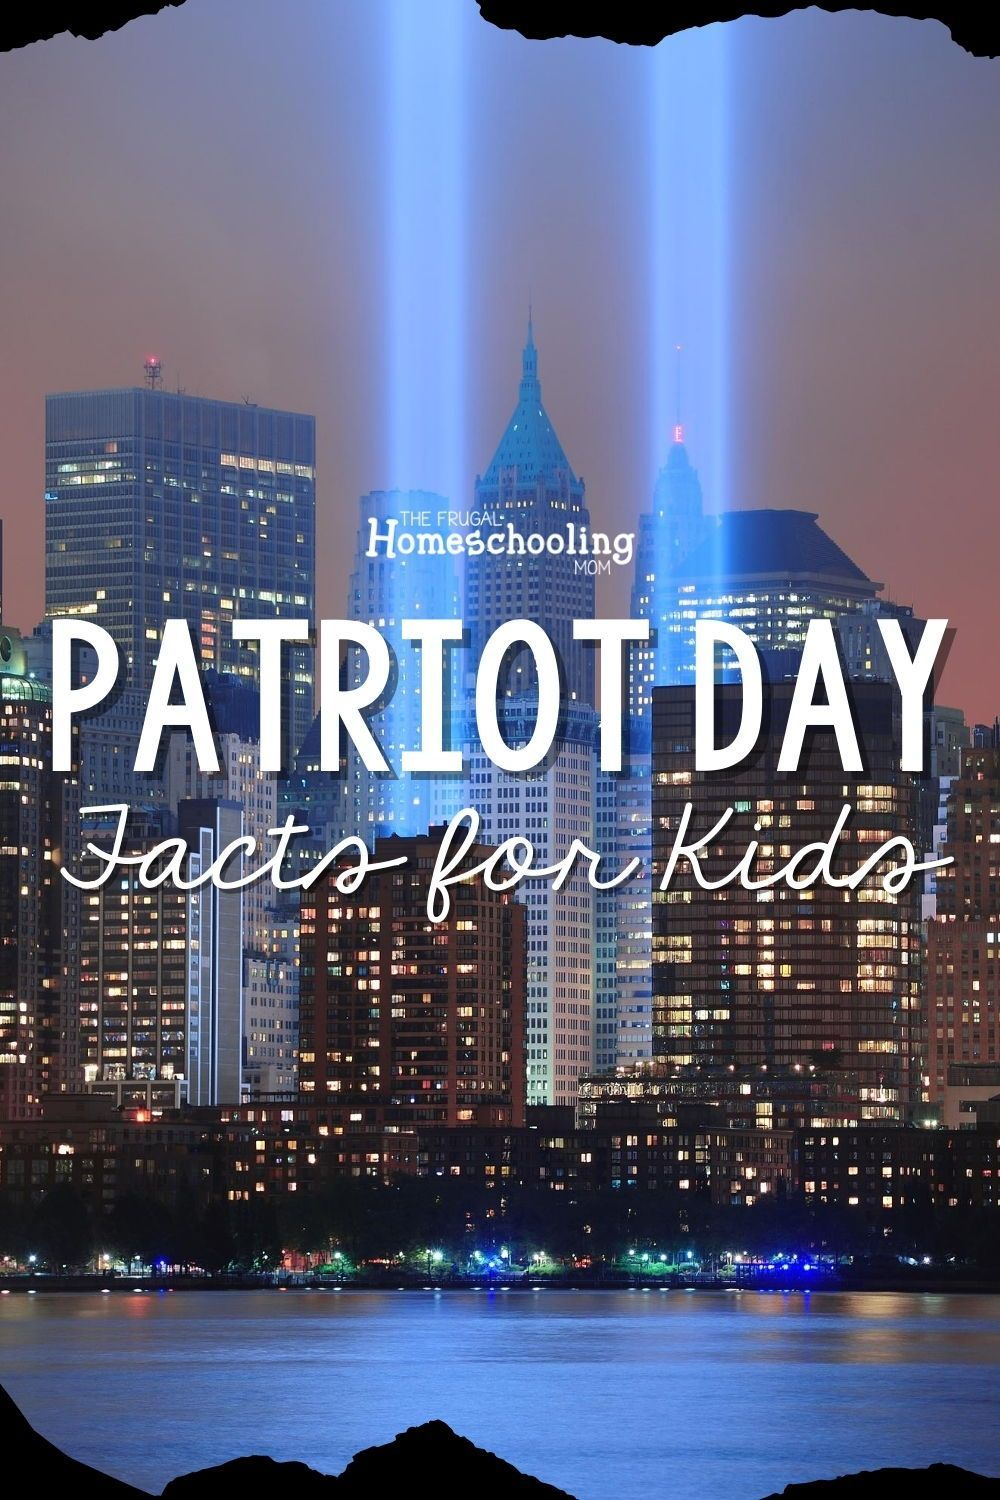 Patriot Day Free Printables And Activities September 11 2001 Remembrance In 2020 Fall Classroom Activities Patriots Day Free Homeschool Printables